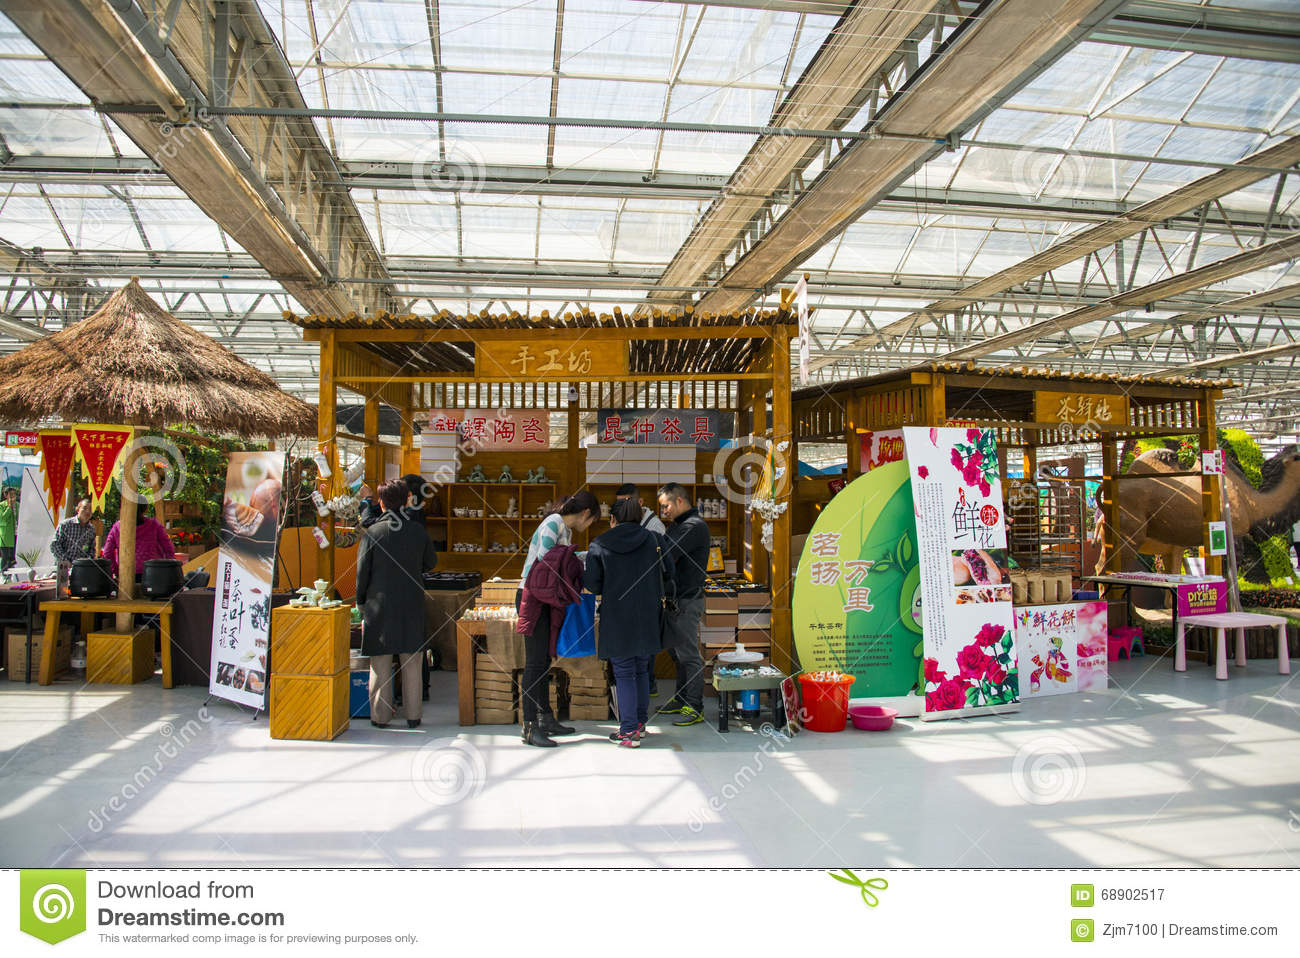 Exhibition Hall Booth : Asia china beijing agricultural carnival indoor exhibition hall